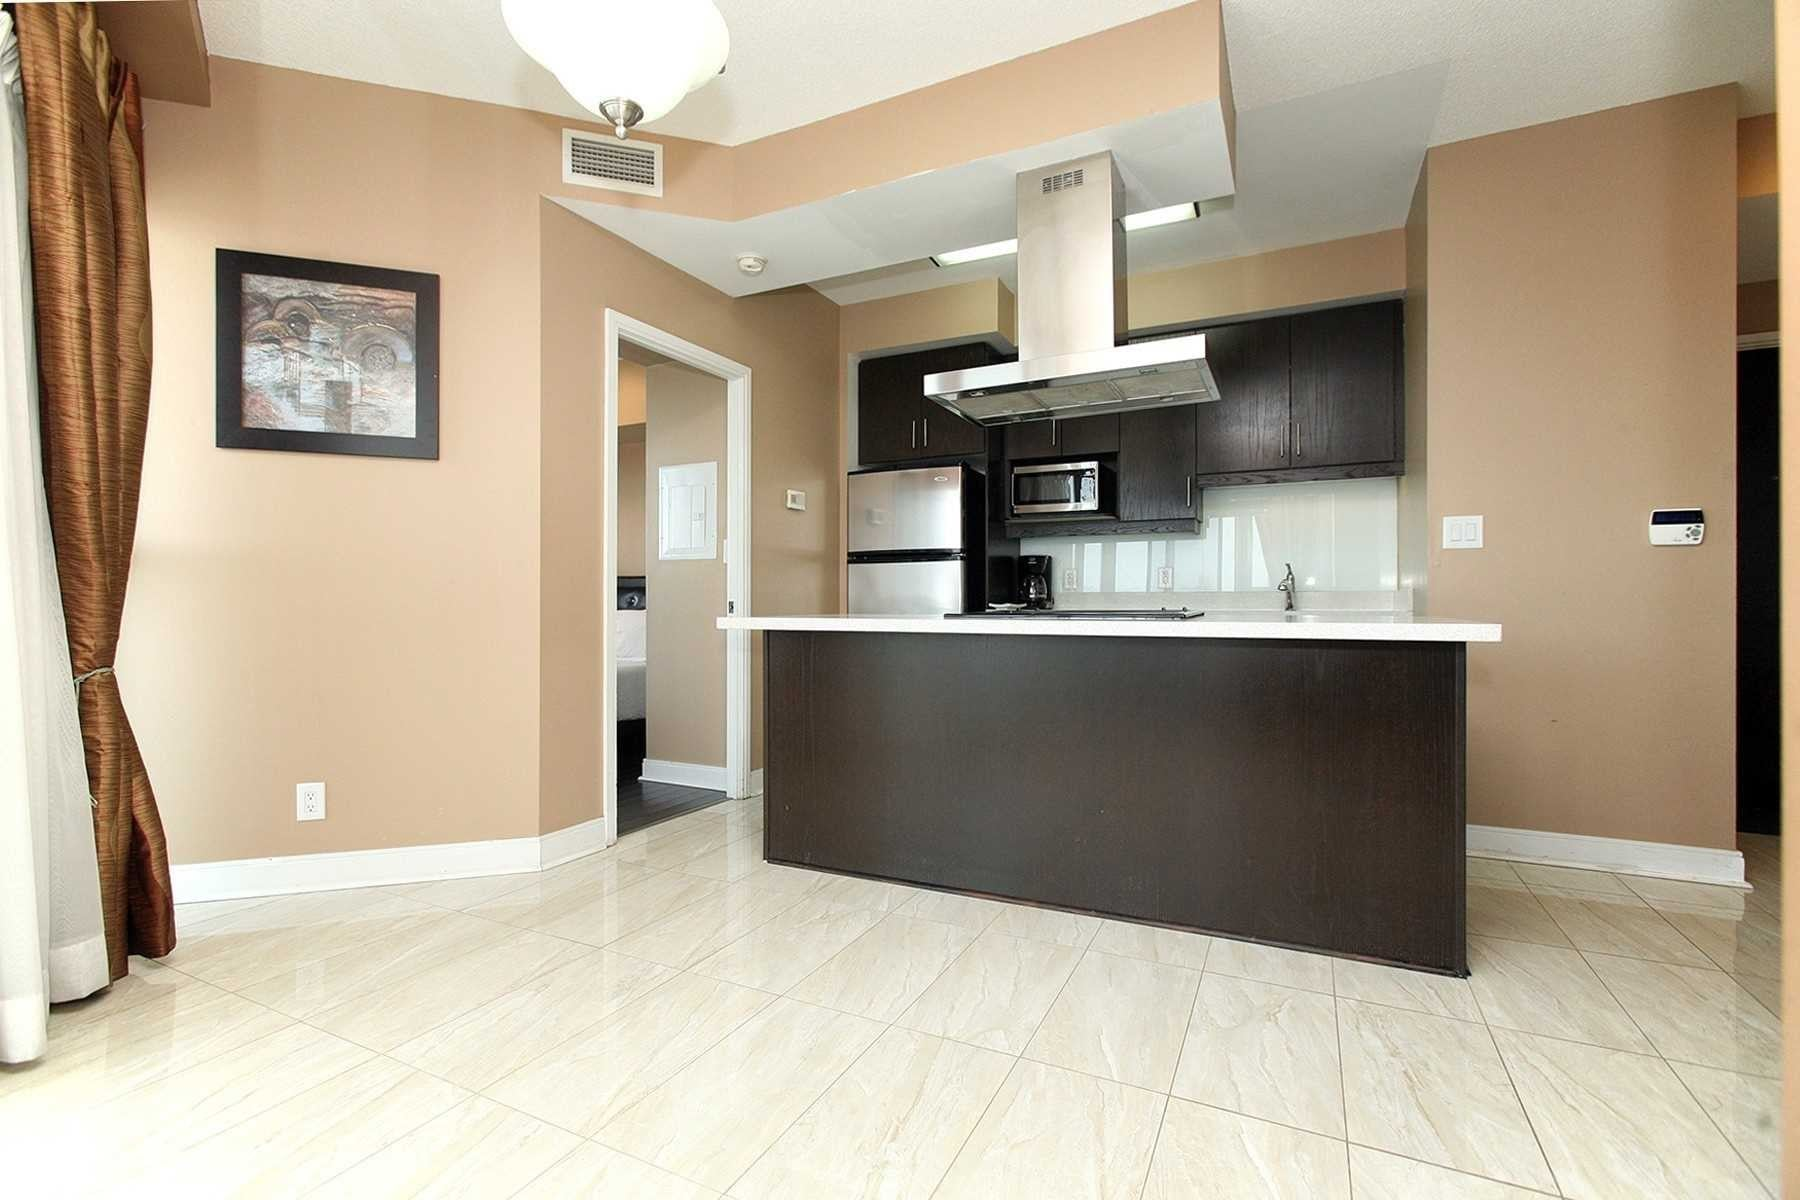 Condo for sale at 60 Absolute Ave Unit 5205 Mississauga Ontario - MLS: W4776329